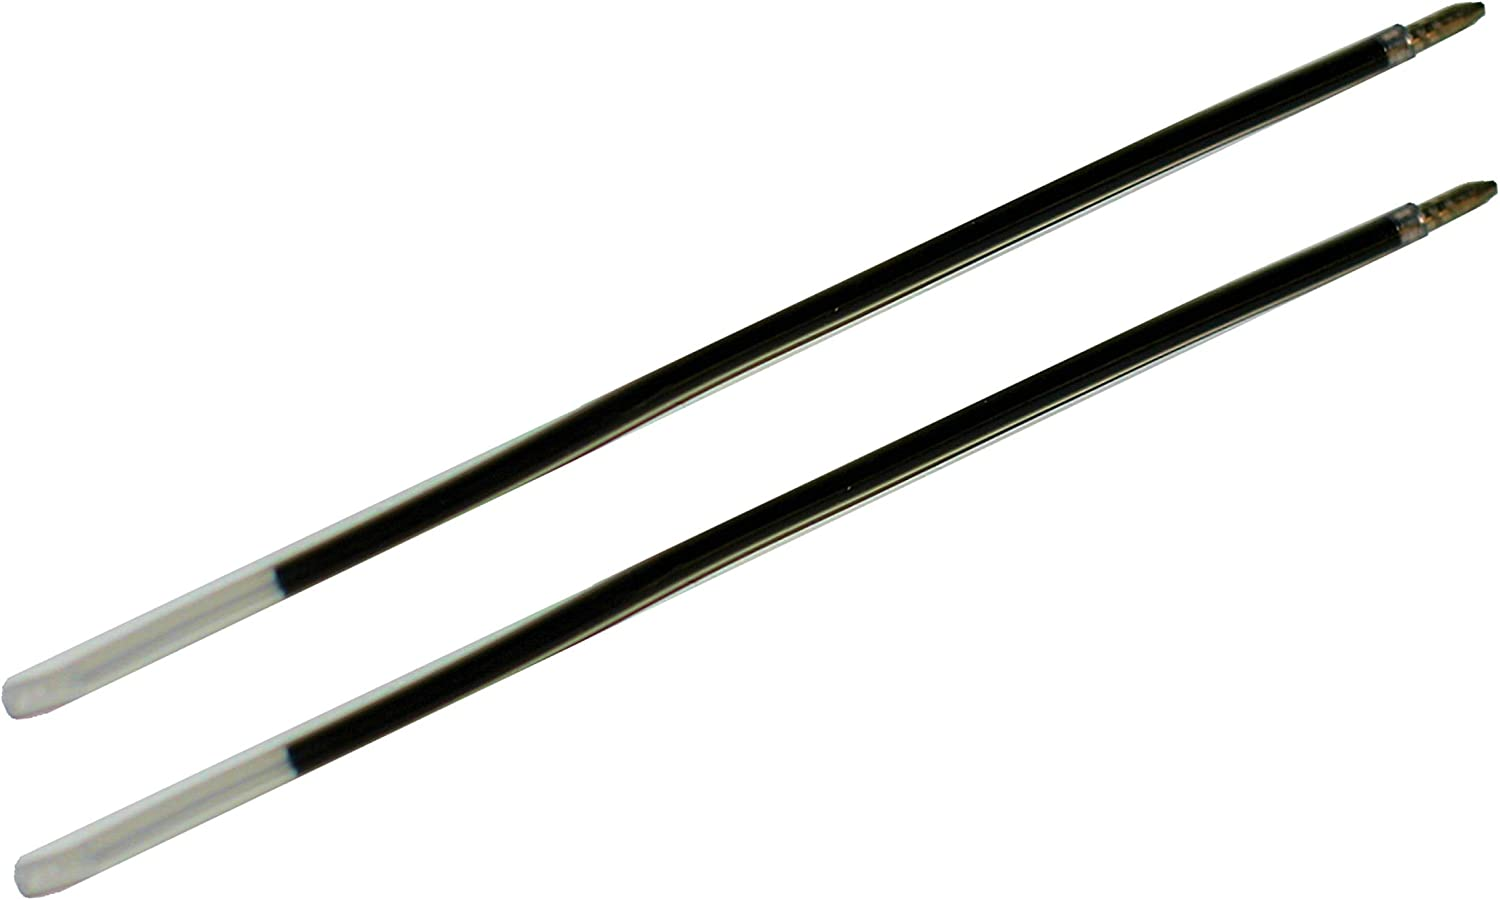 Set of two replacement ink refills for EBINGERS PLACE model #40 pens